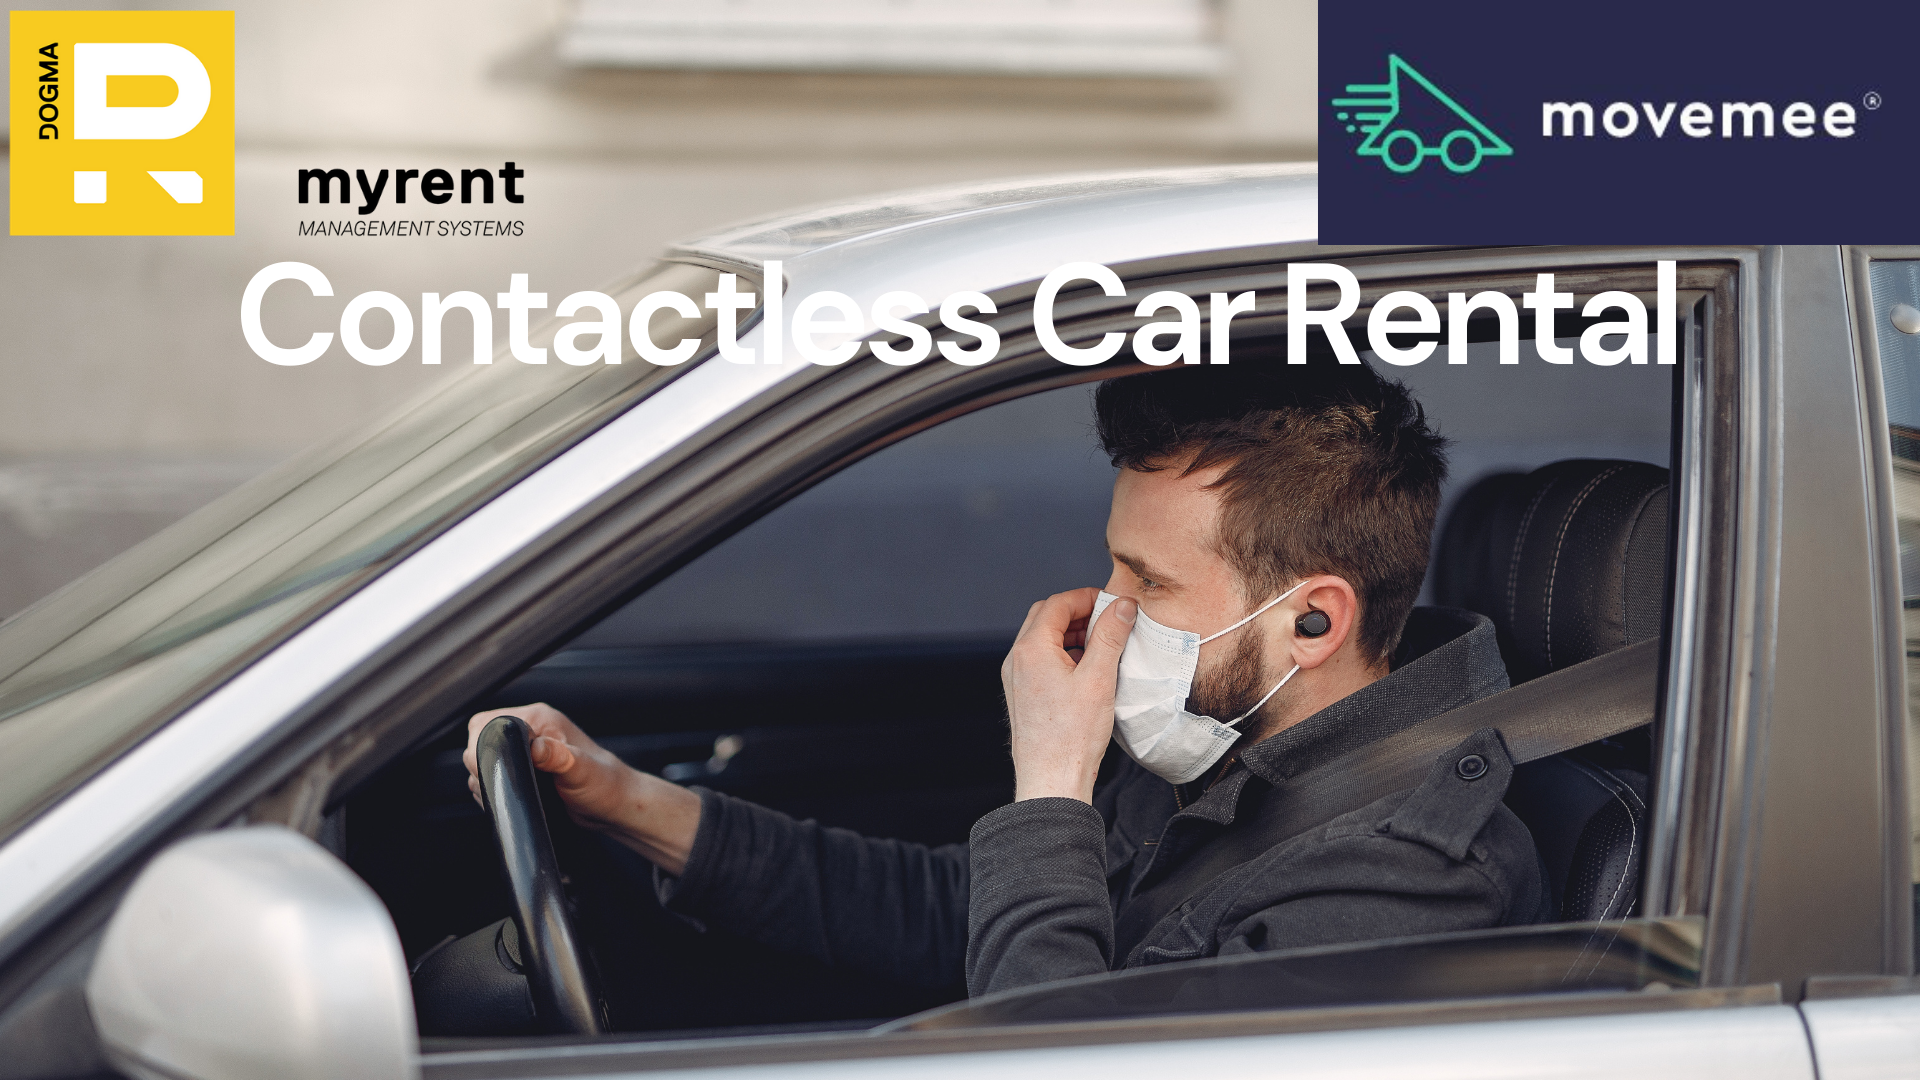 contactless car rental